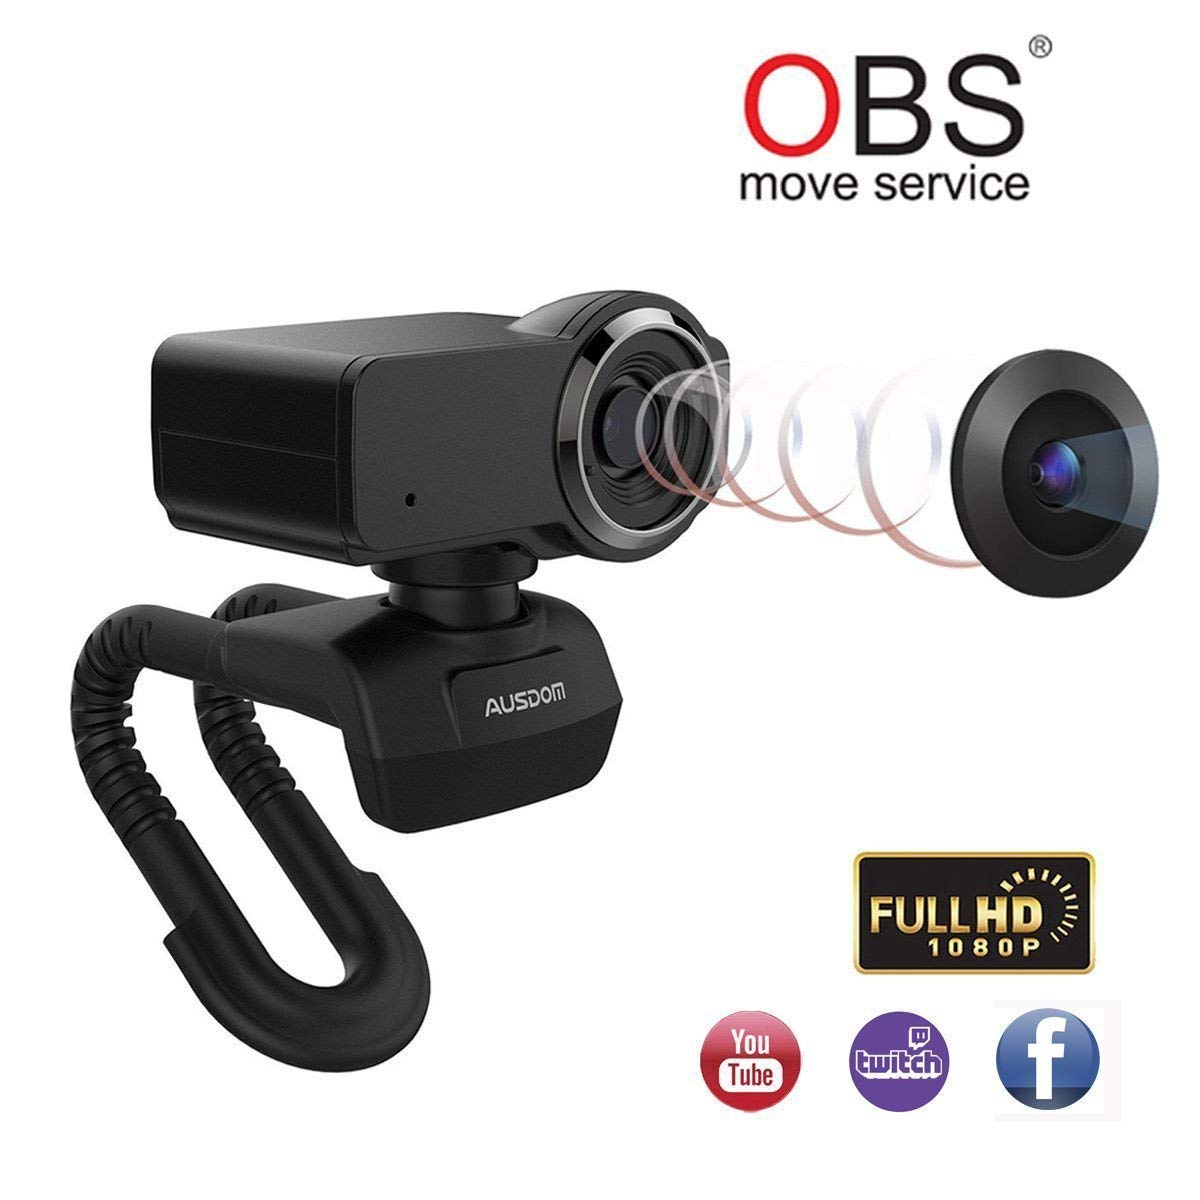 AUSDOM Full HD Webcam 1080P, Obs Live Streaming Camera, USB Webcam For Xbox  Skype Twitch Youtube Facebook, Compatible For Mac Os Windows 10/8/7